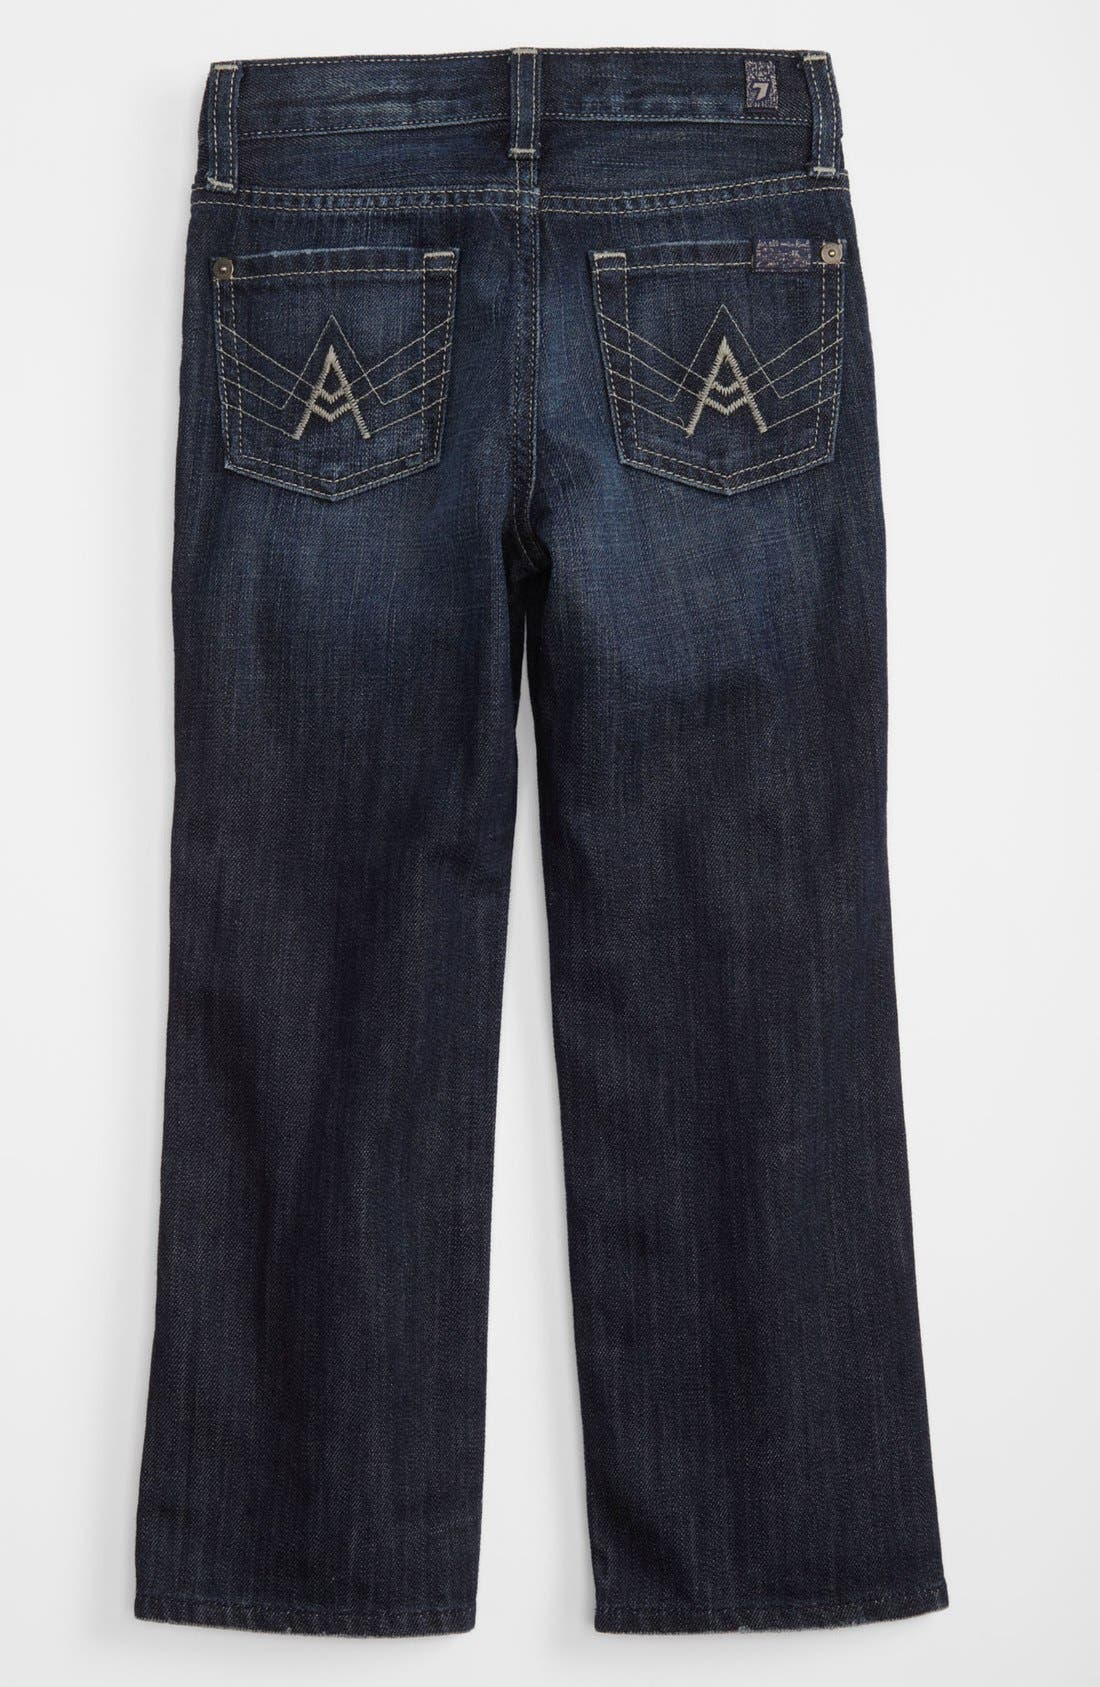 Main Image - 7 For All Mankind® 'Standard' Straight Leg Jeans (Little Boys & Big Boys) (Online Only)